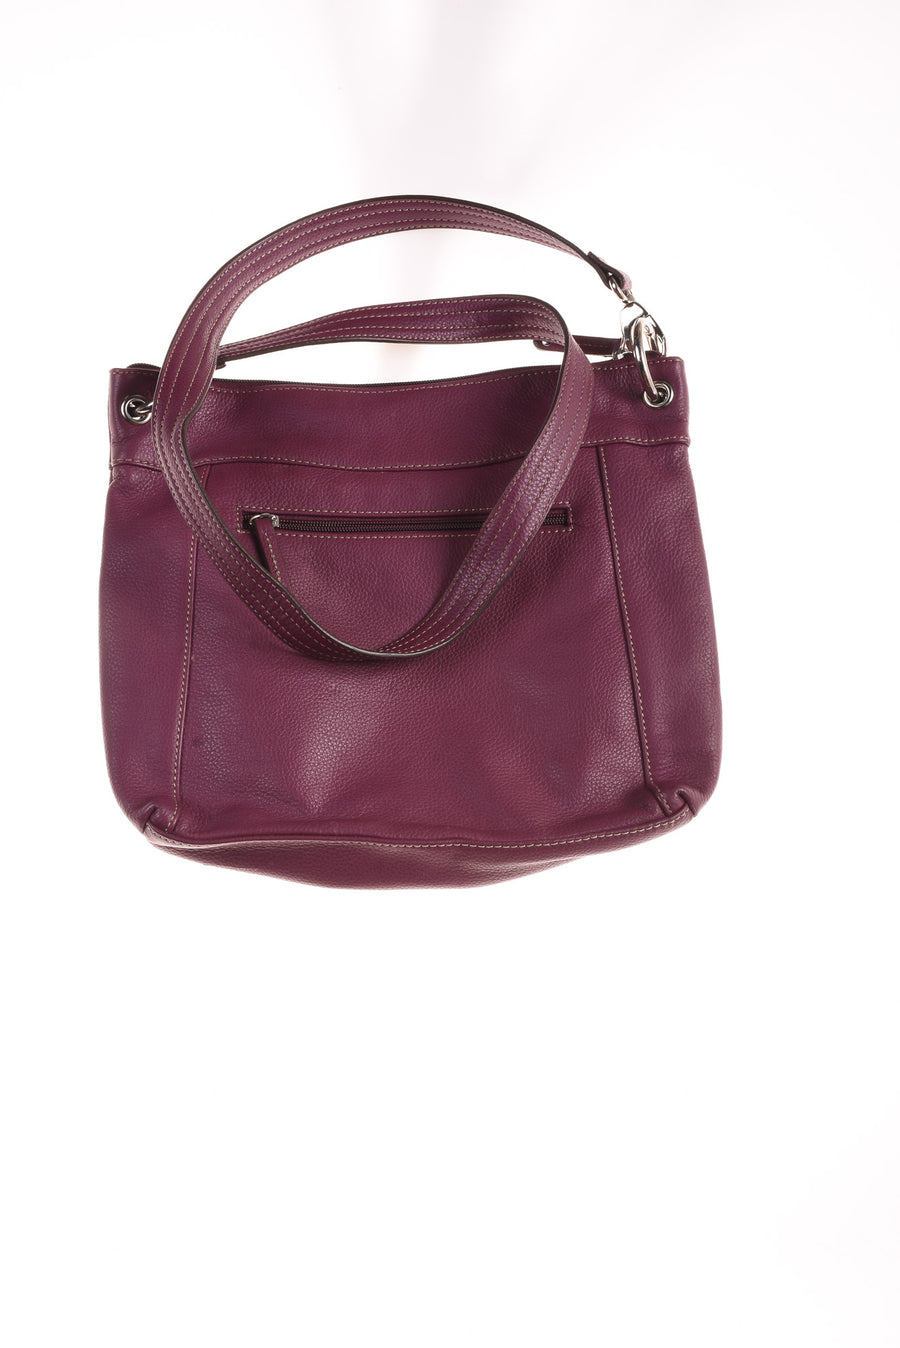 Women's Handbag By Tignanello